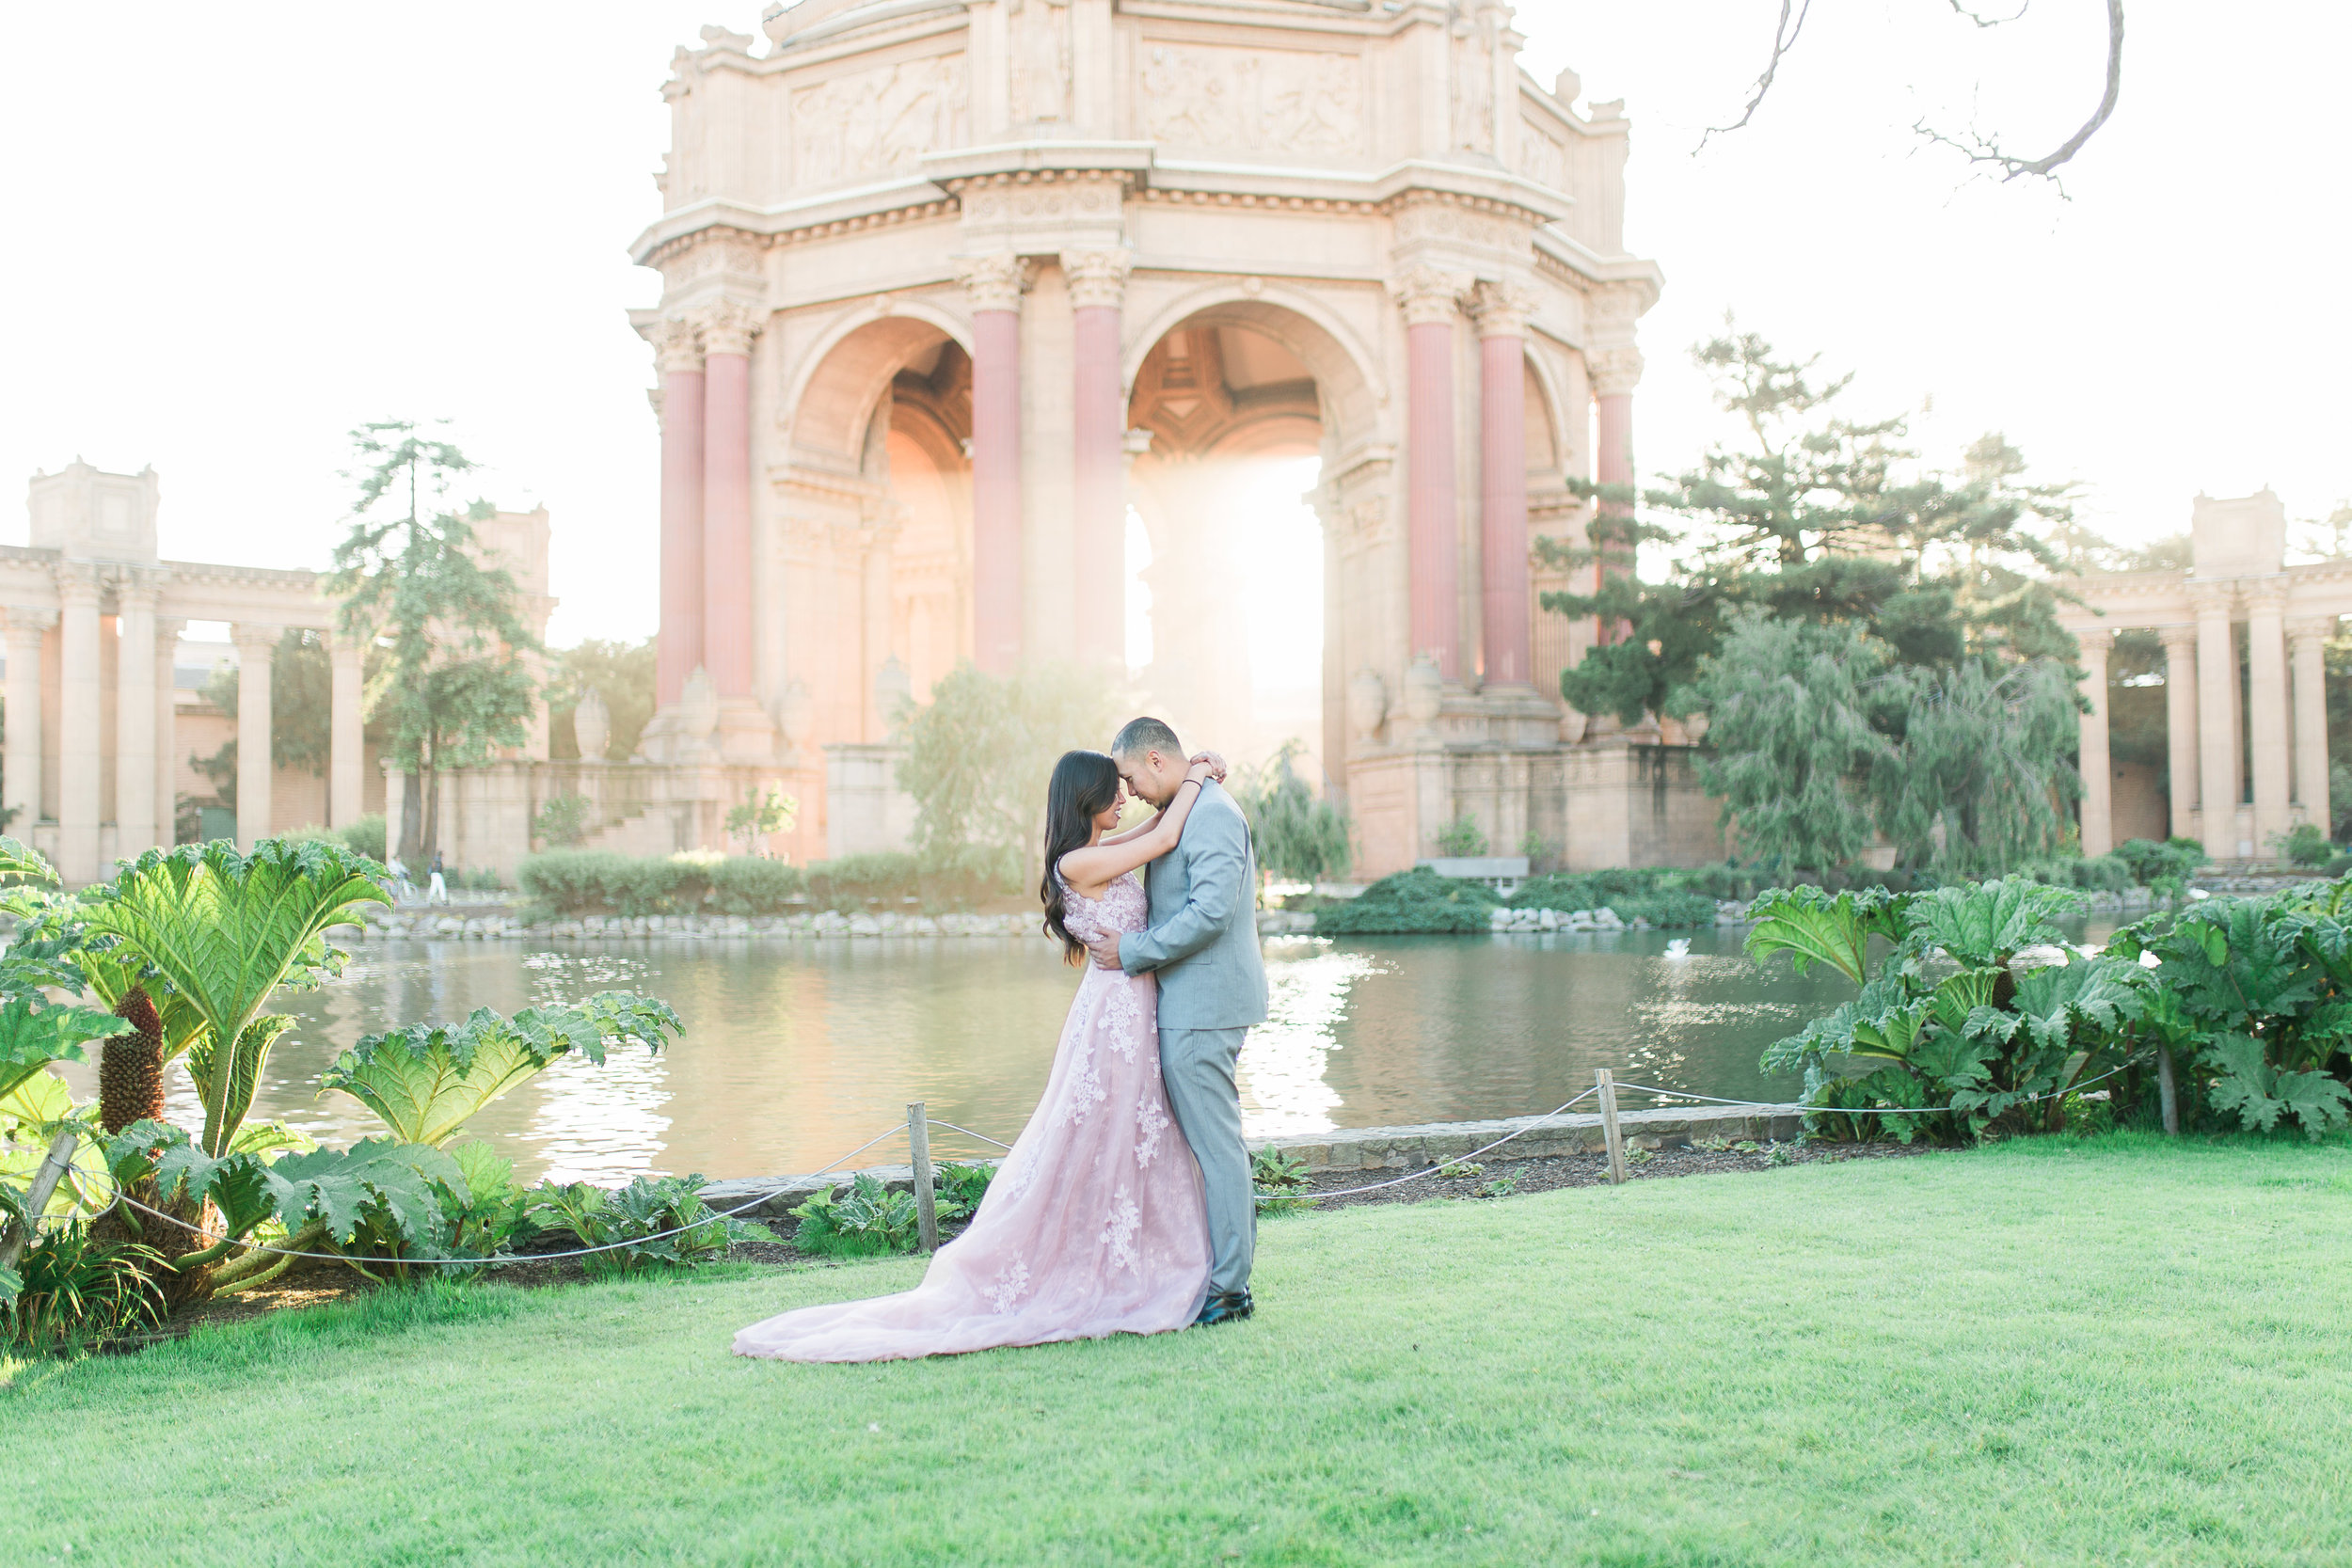 Palace of Fine Arts Engagement Photos - Lover's Lane San Francisco Engagement Session by JBJ Pictures Wedding Photographer in San Francisco (24).jpg